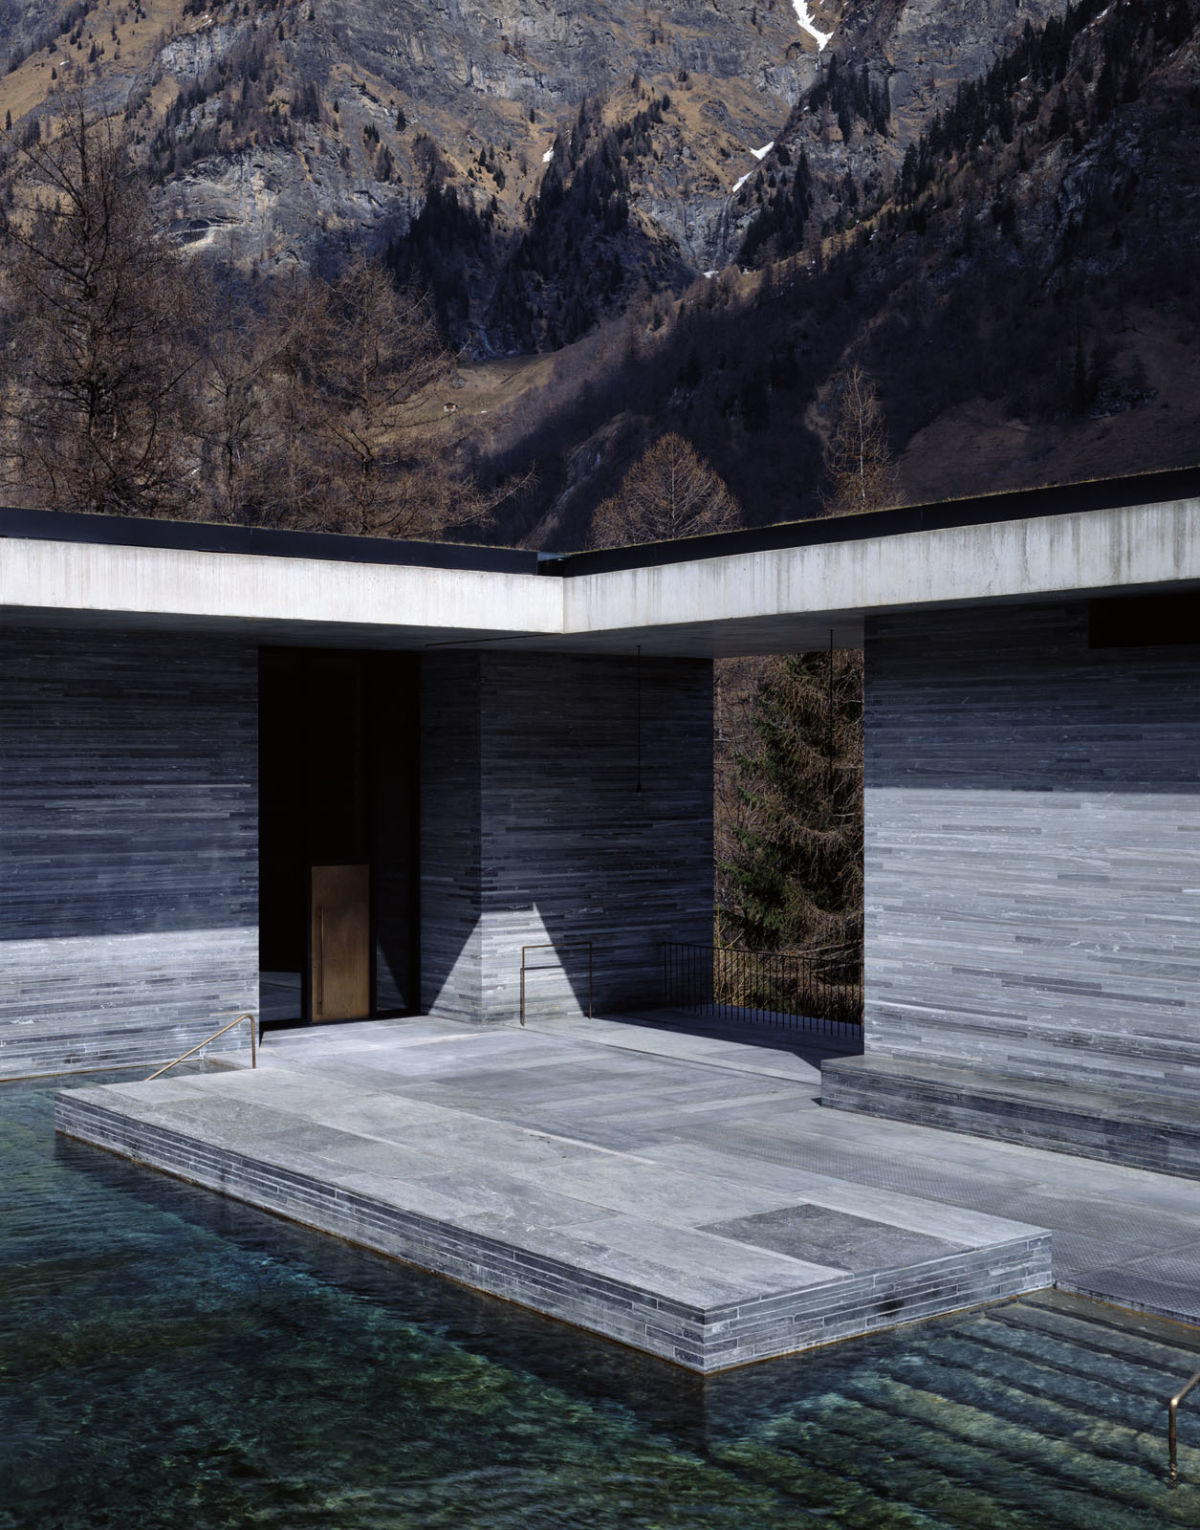 Peter Zumthor H 233 L 232 Ne Binet 183 Therme Vals 183 Divisare